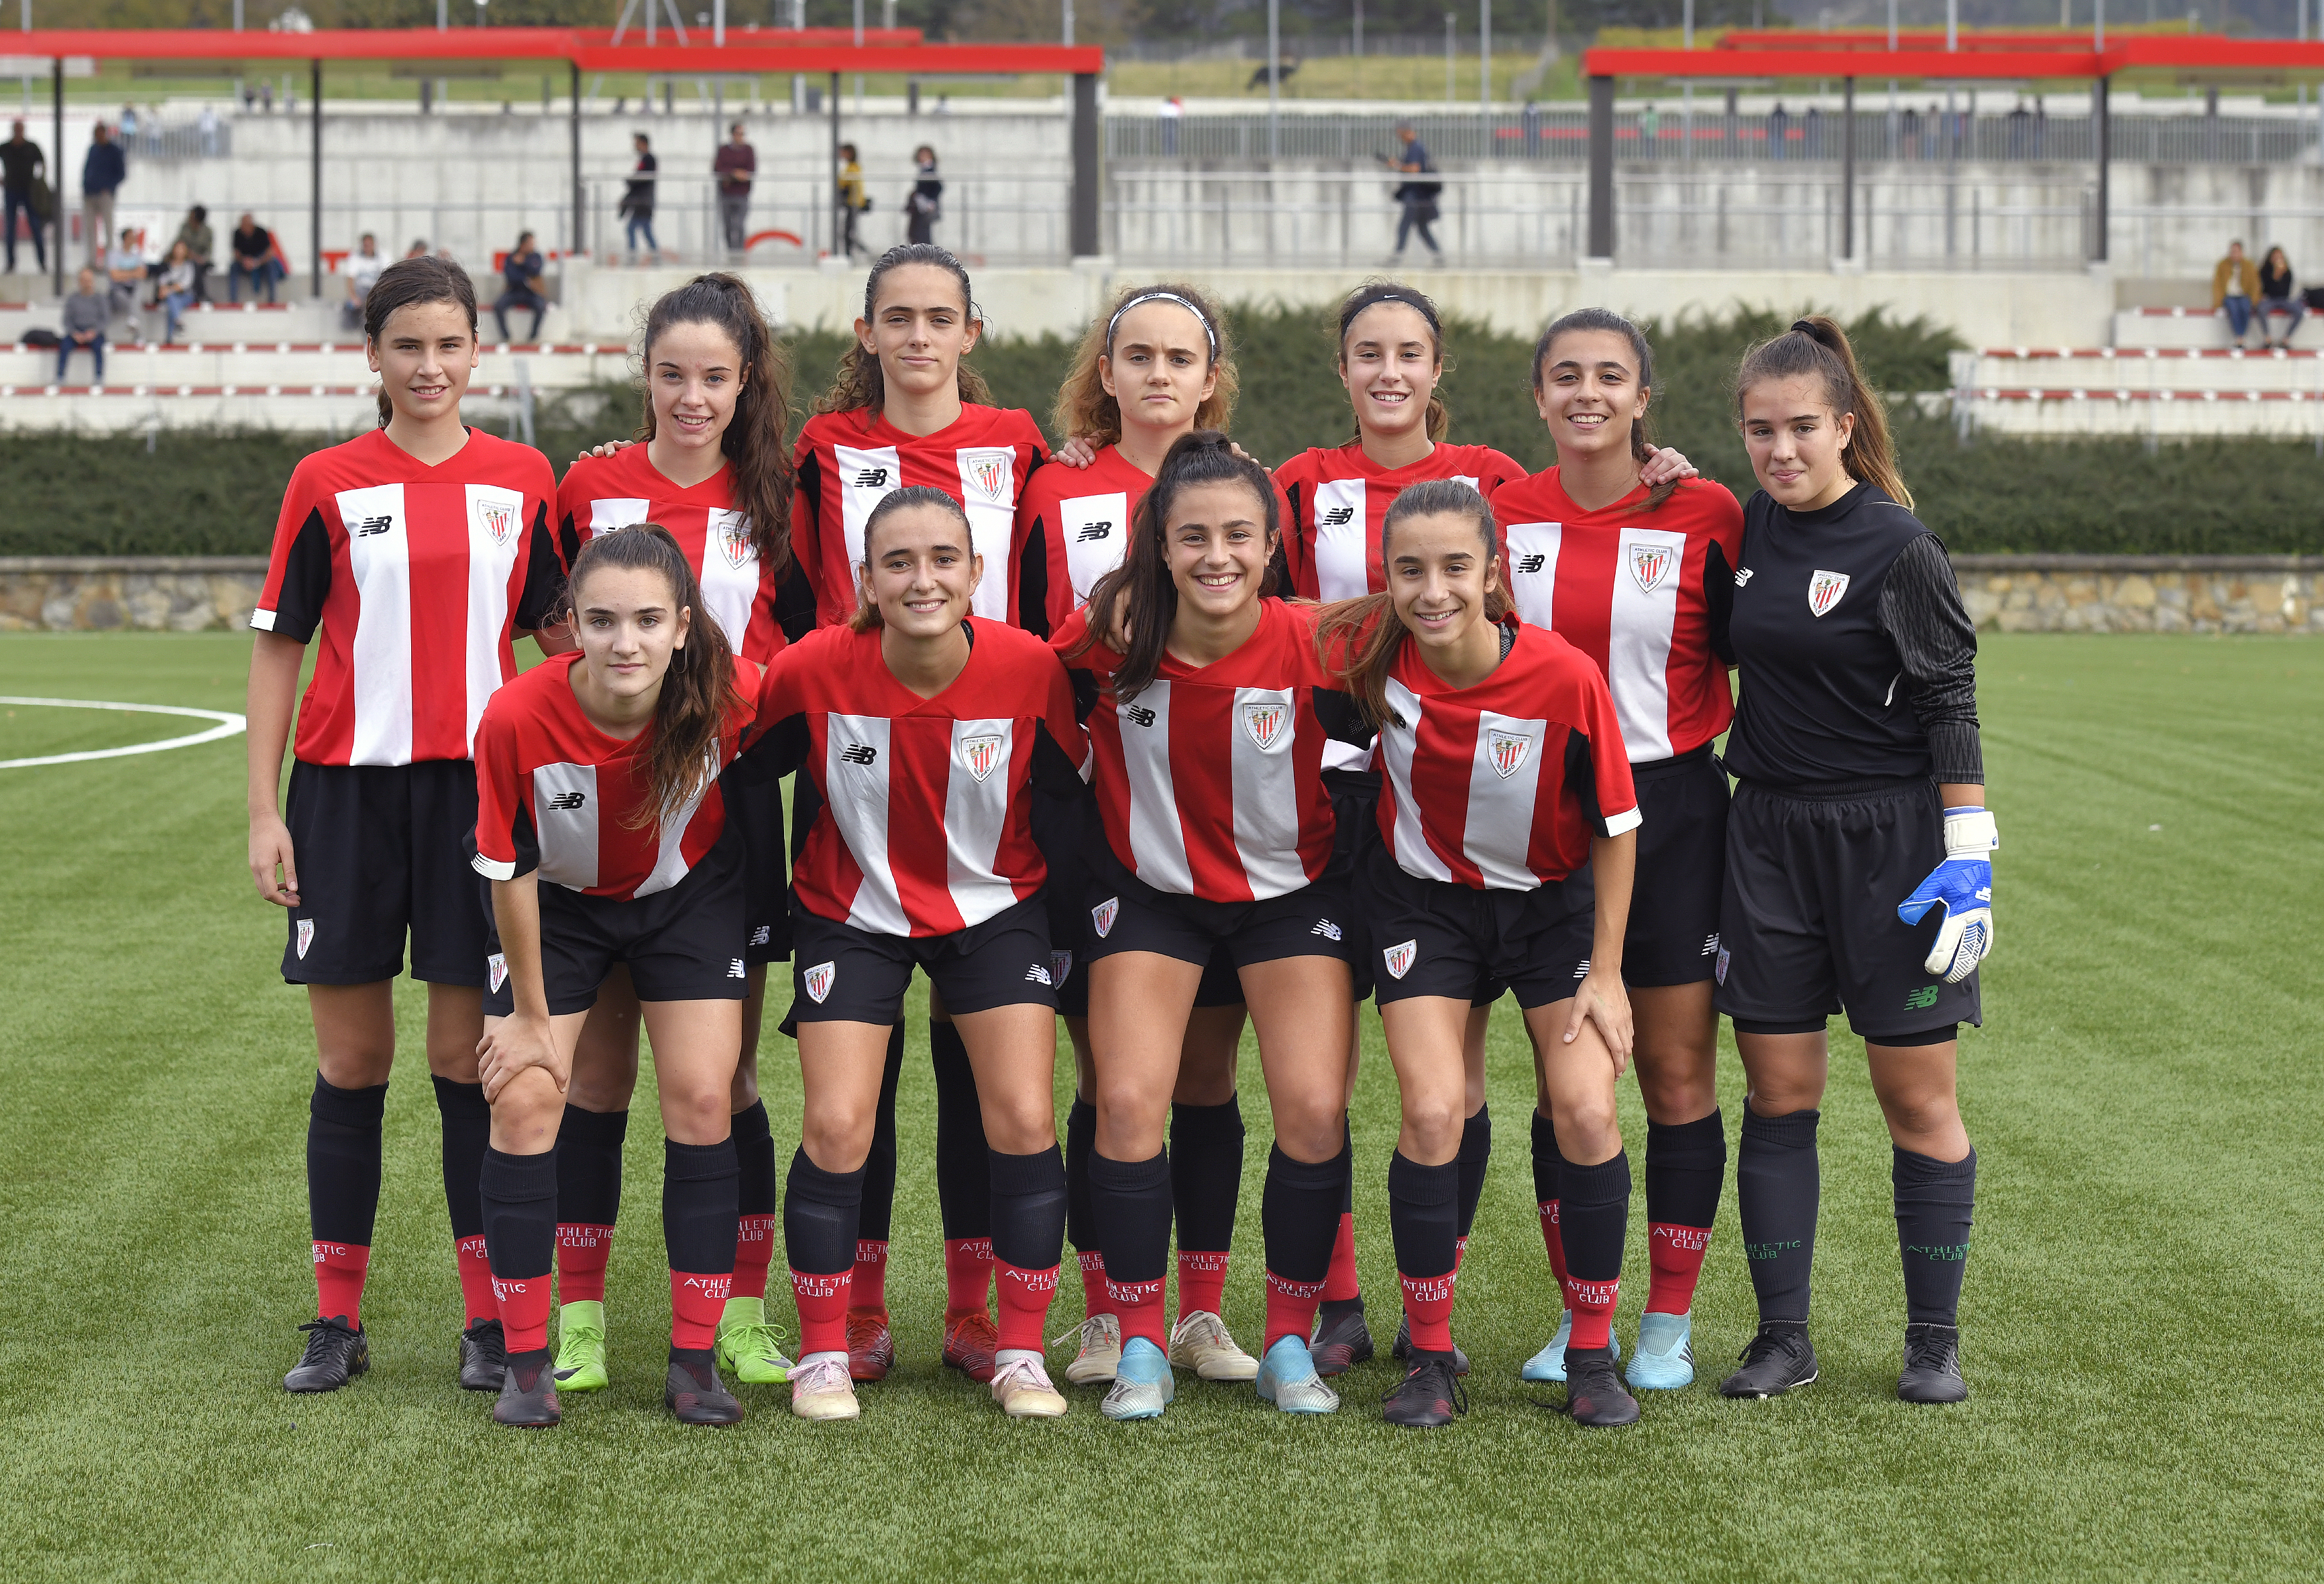 Women's C will play in the Women's Basque League